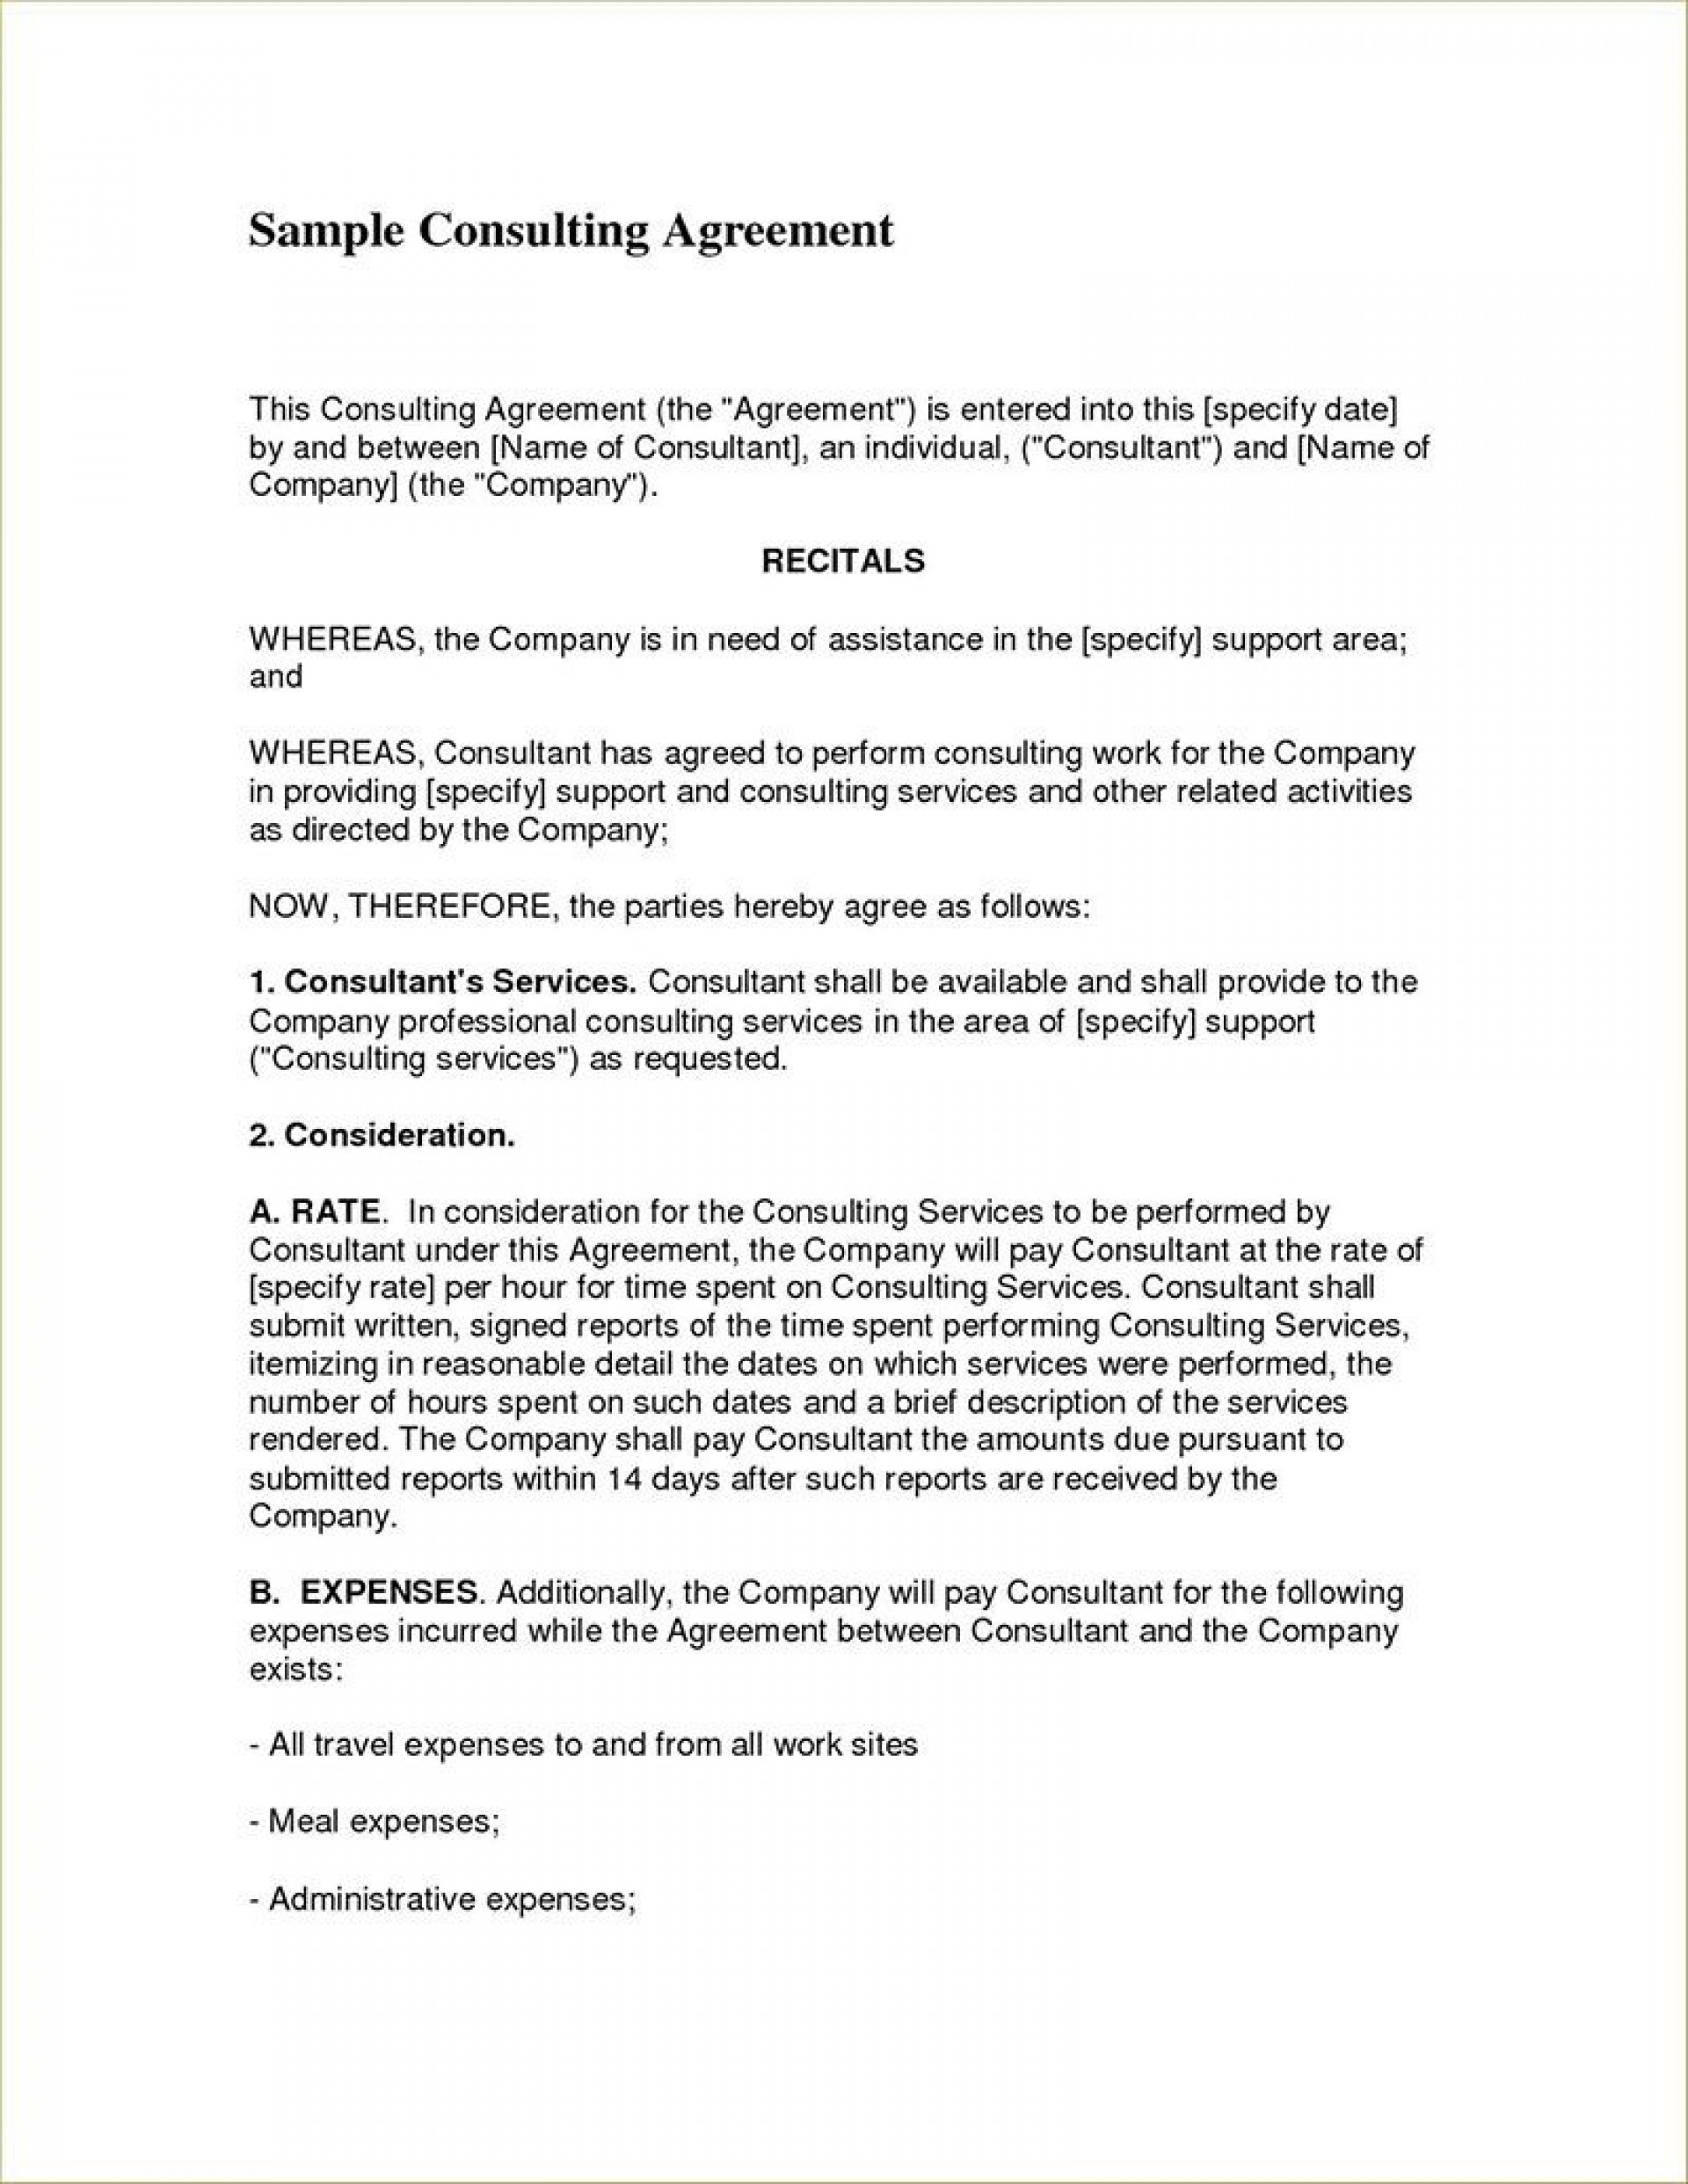 004 Simple Consulting Agreement Template Word High Resolution  Sample Free1920